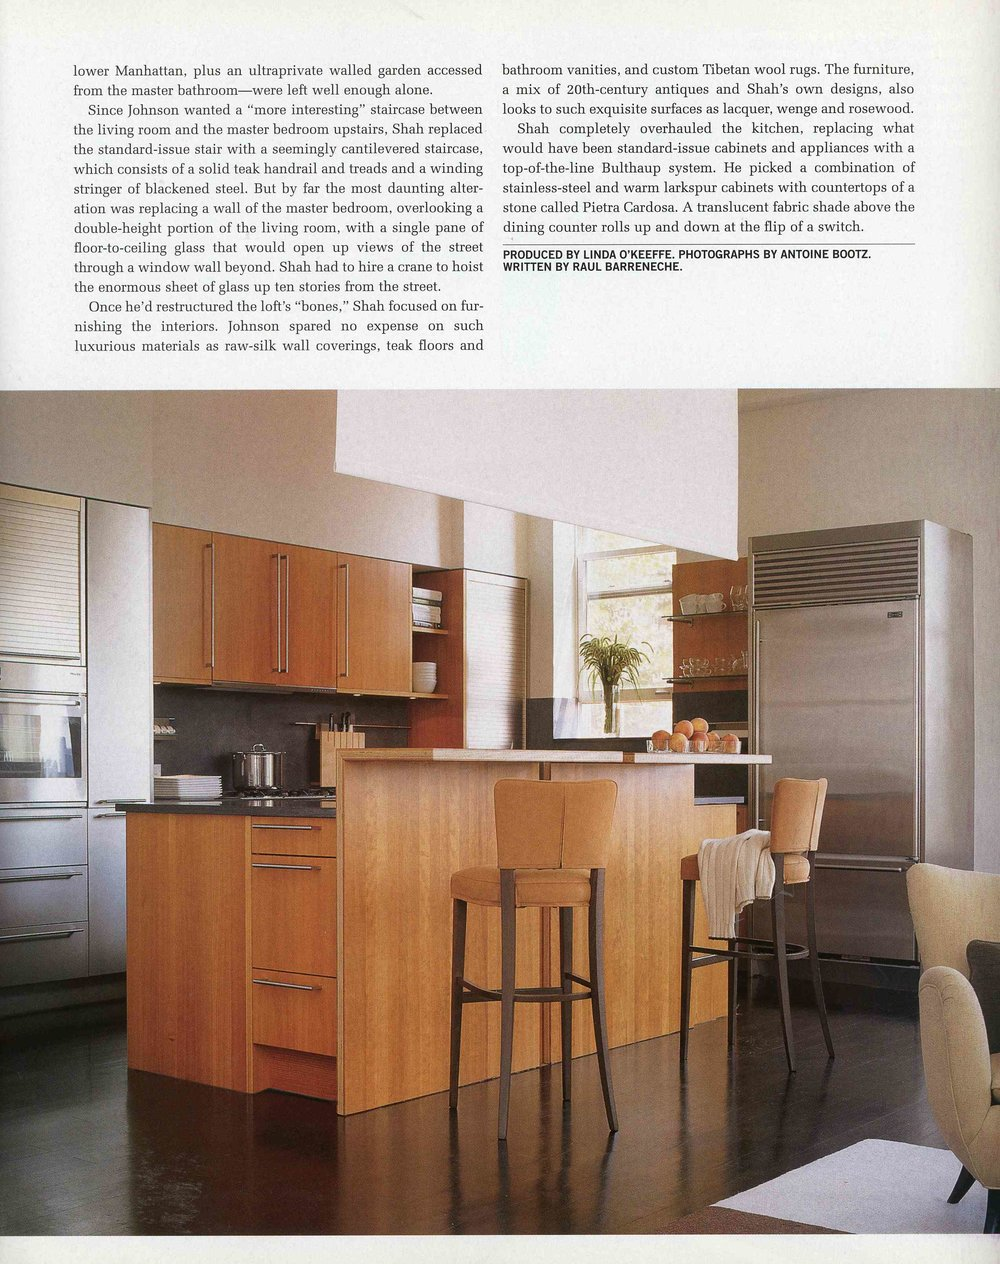 Met Home_May-June 02_Johnson Apt_Full Article_Page_5.jpg